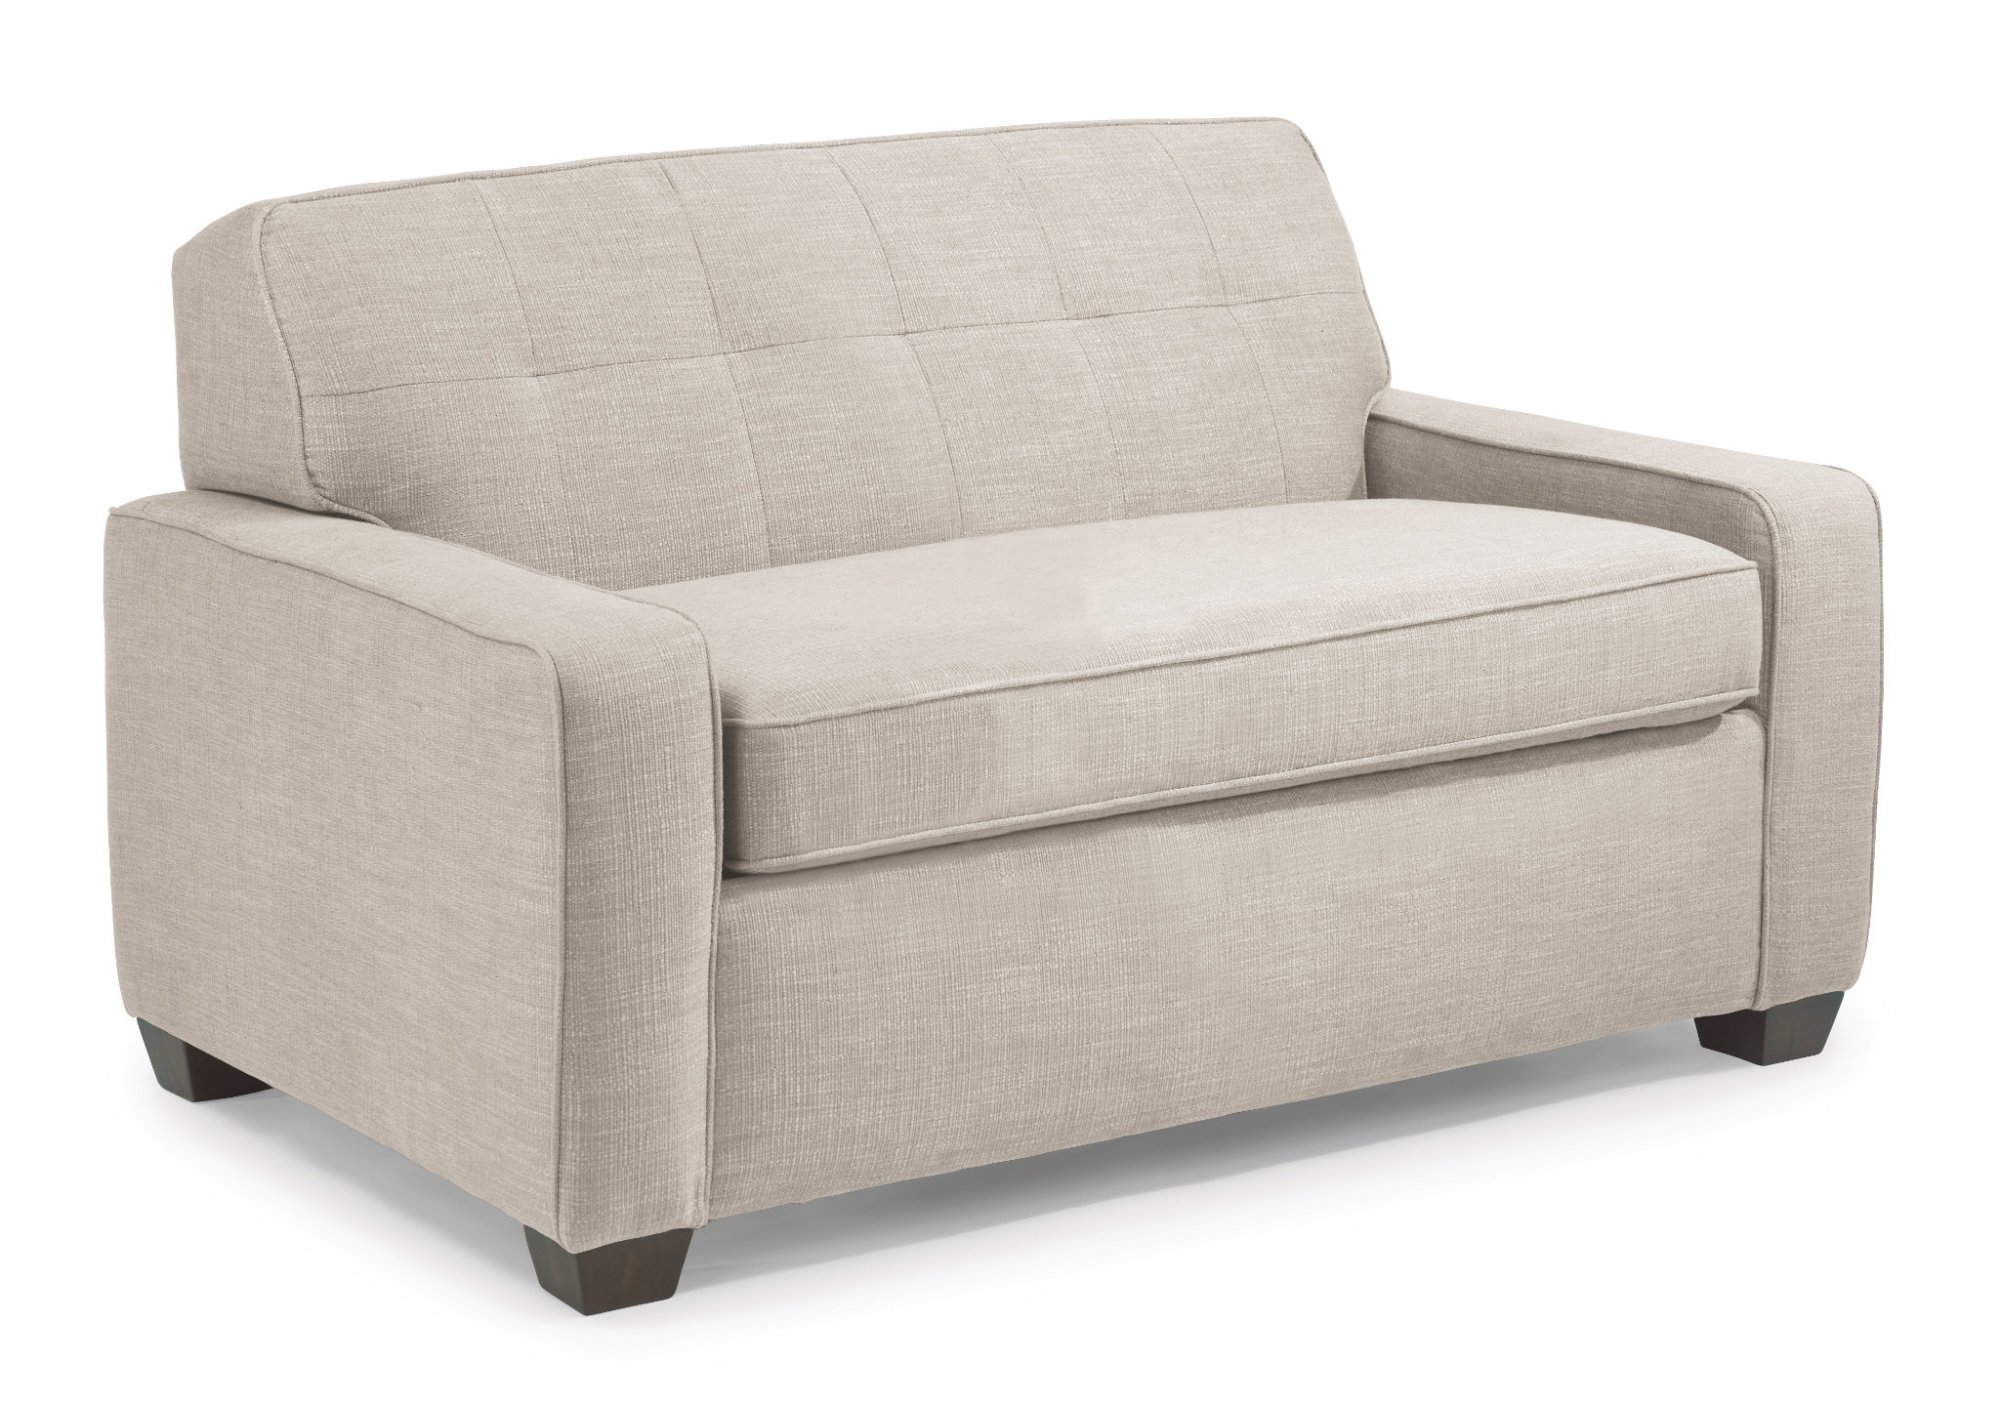 Anthem  Jule Sleep System Single Sleeper Sofa